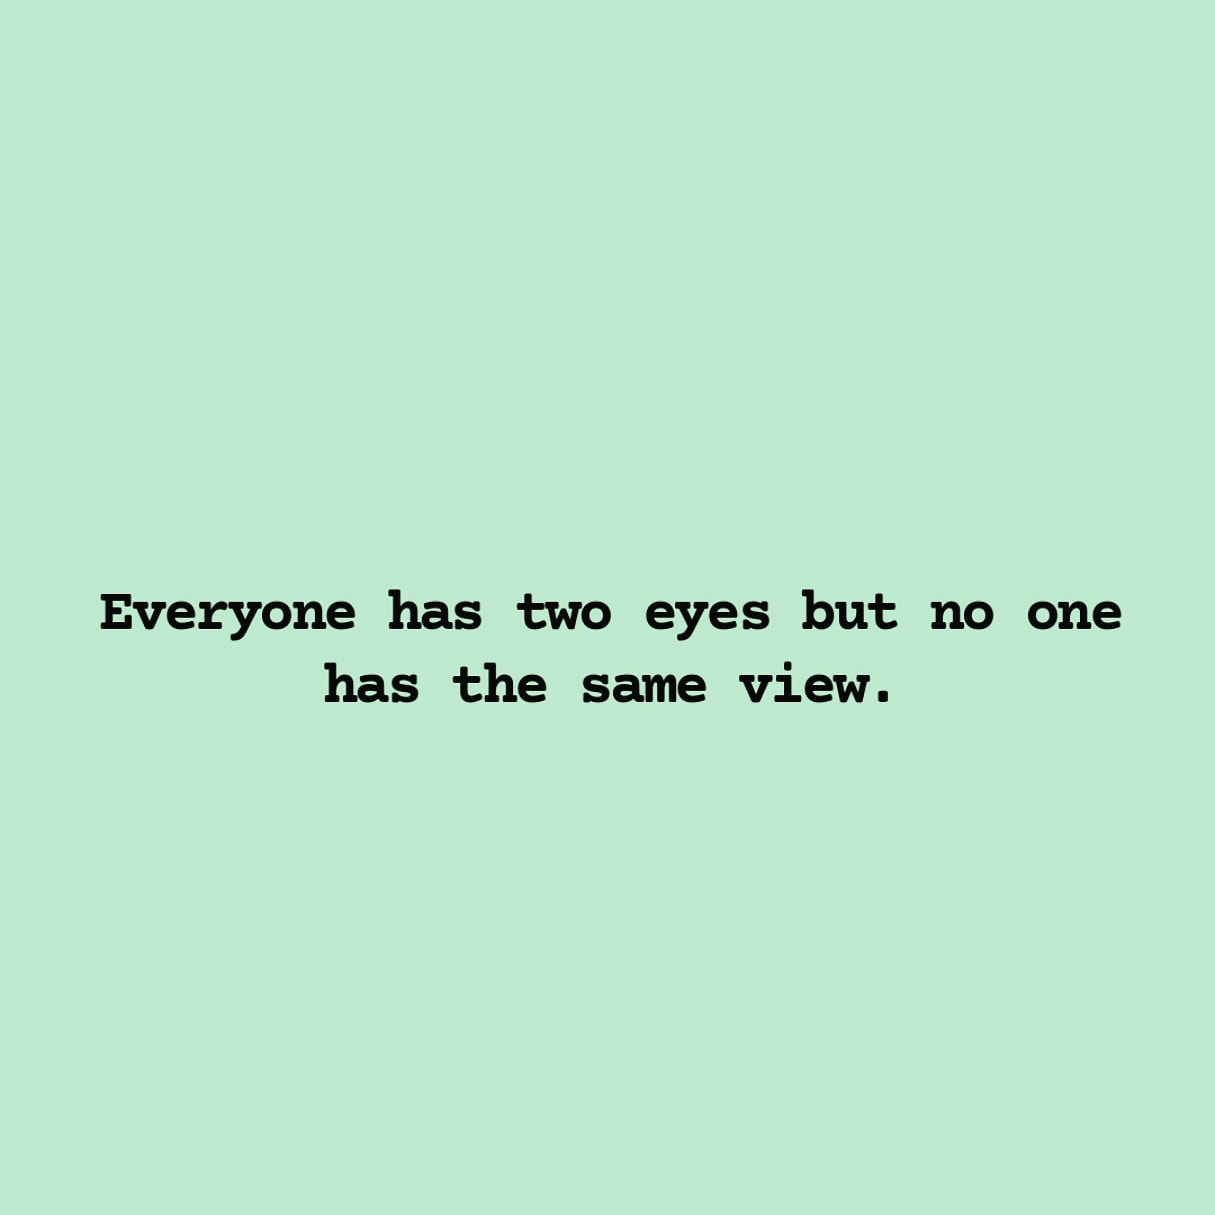 Everyone has two eyes but no one has the same view (1080X1080)